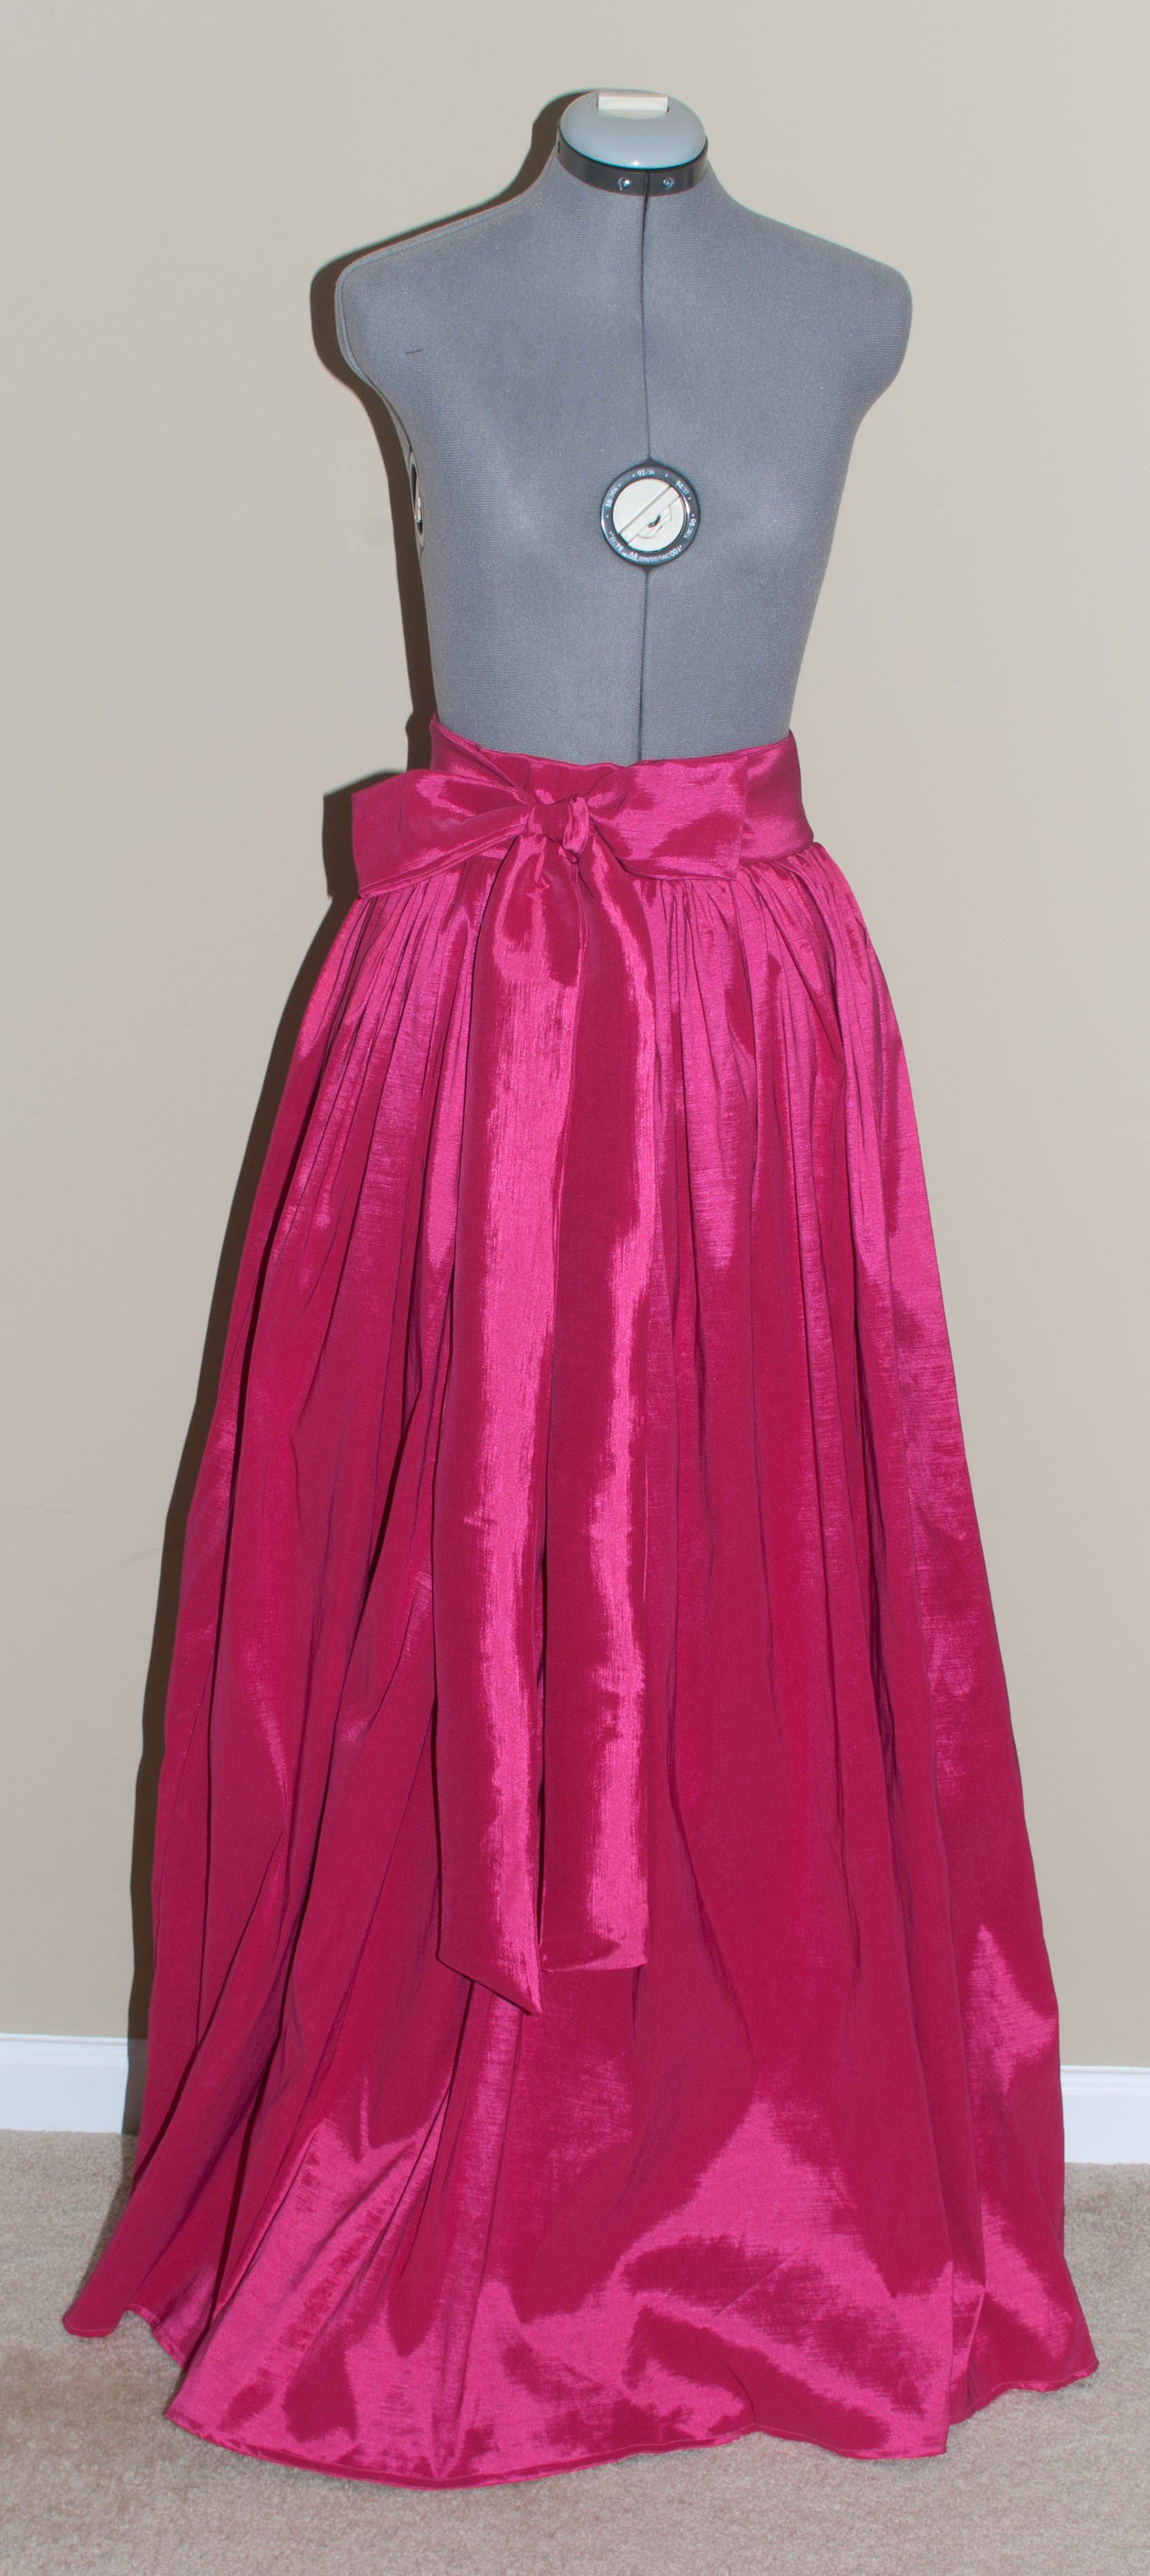 The Ball Gown Skirt DIY: Taffeta Maxi Skirt | sewing projects ...